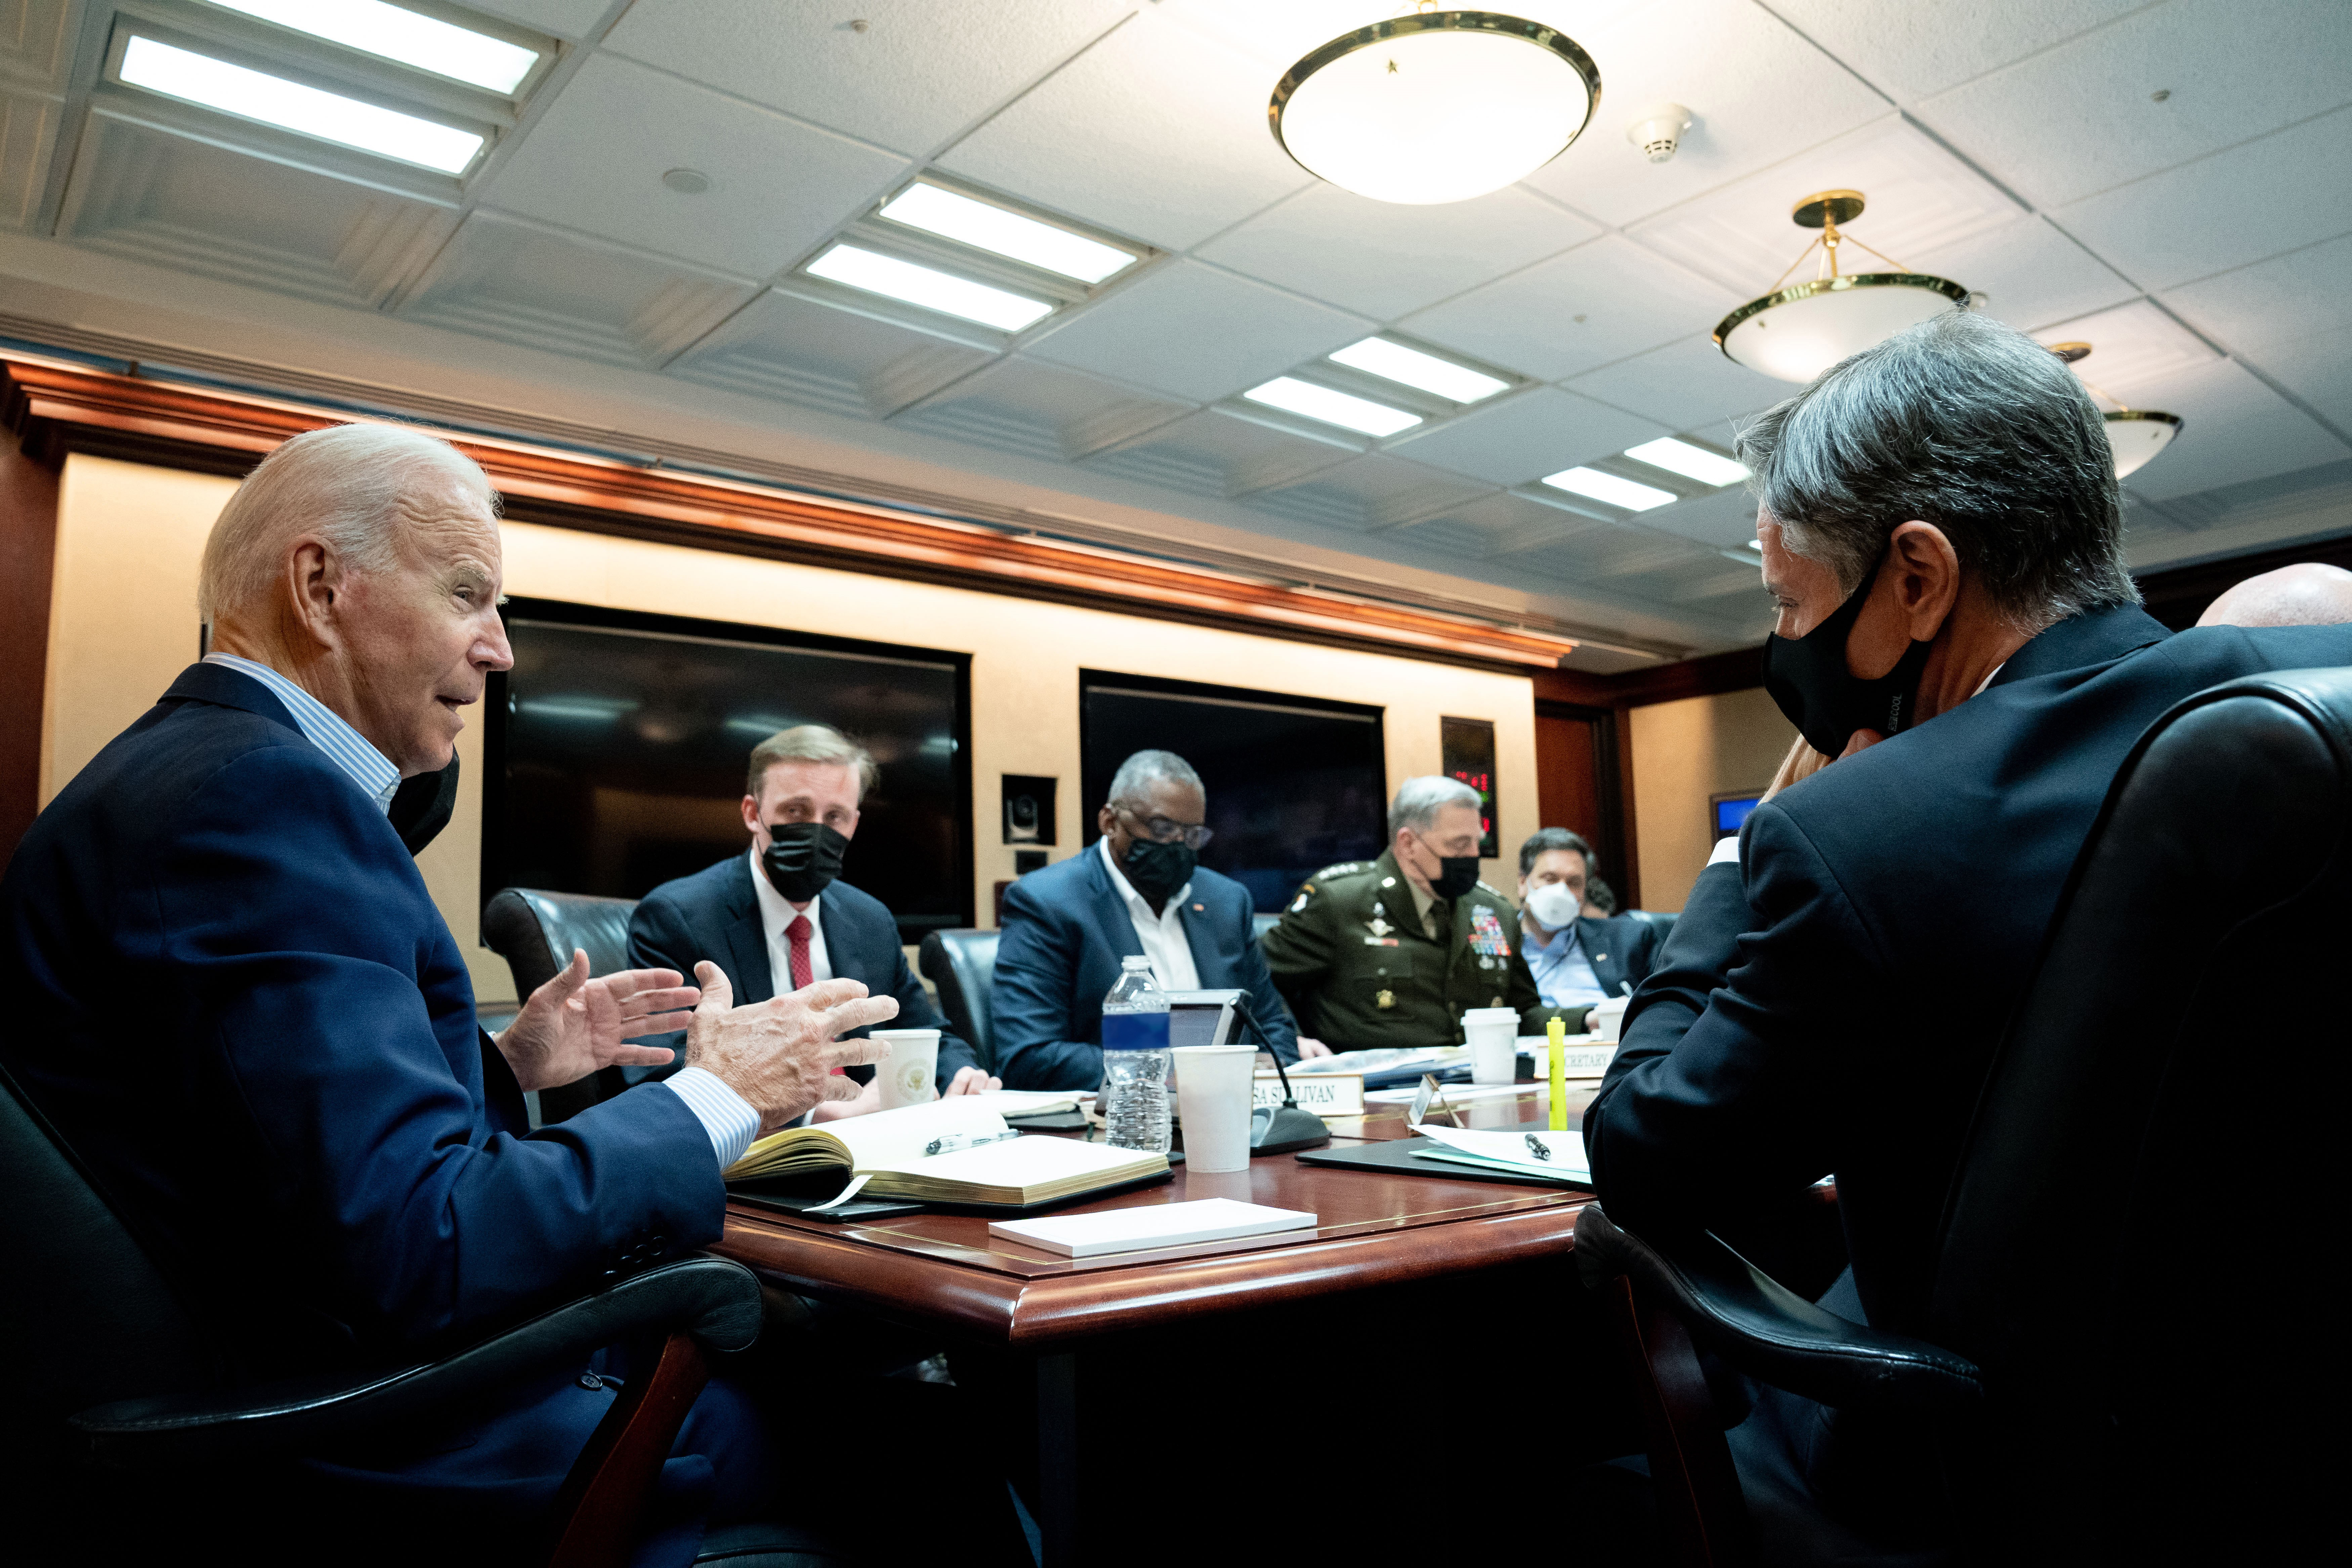 In this handout photo provided by the White House, Joe Biden meets with his national security team for an operational update on the situation in Afghanistan at the White House in Washington, D.C. (Photo by The White House via Getty Images)